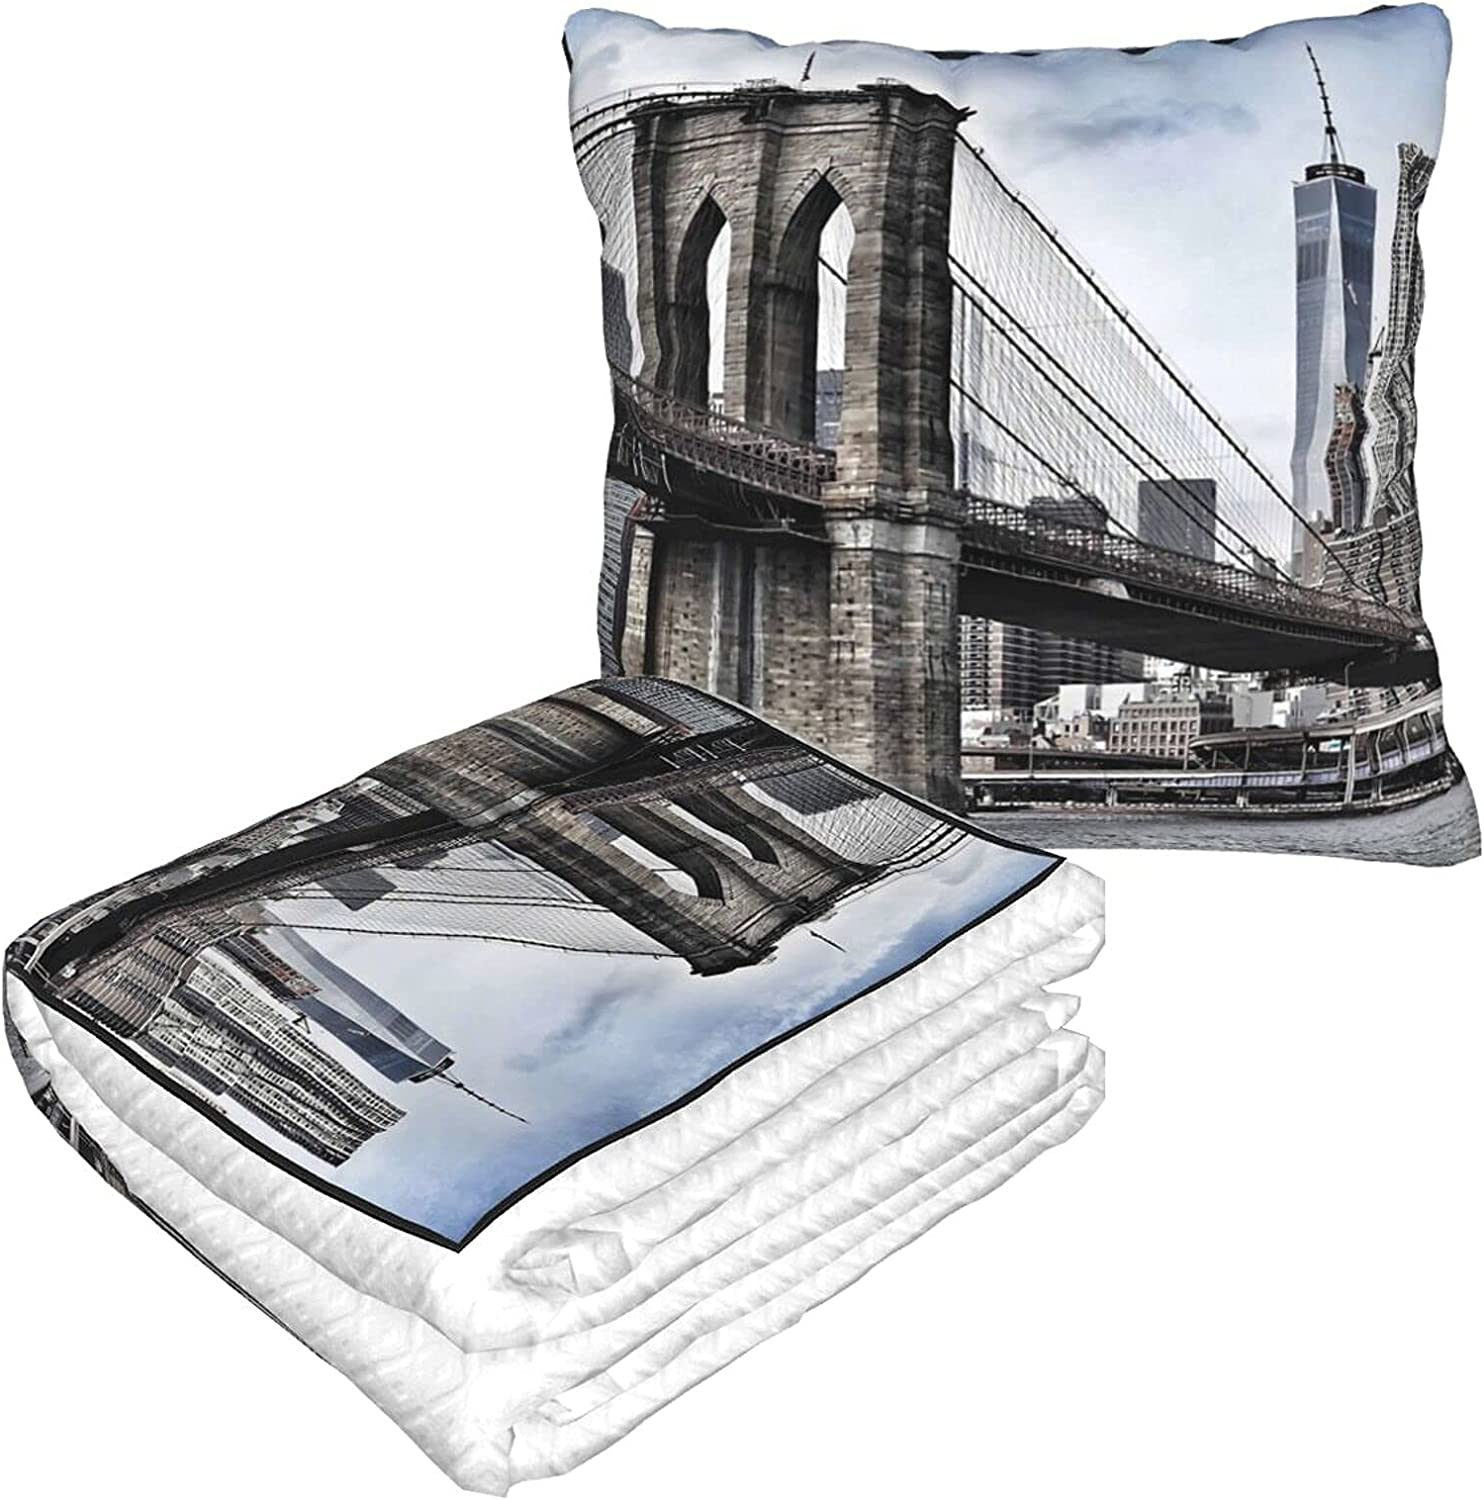 Travel Pillow Blanket for Airplanes #Trend #Decor NYC Mail order #Tapestry Great interest